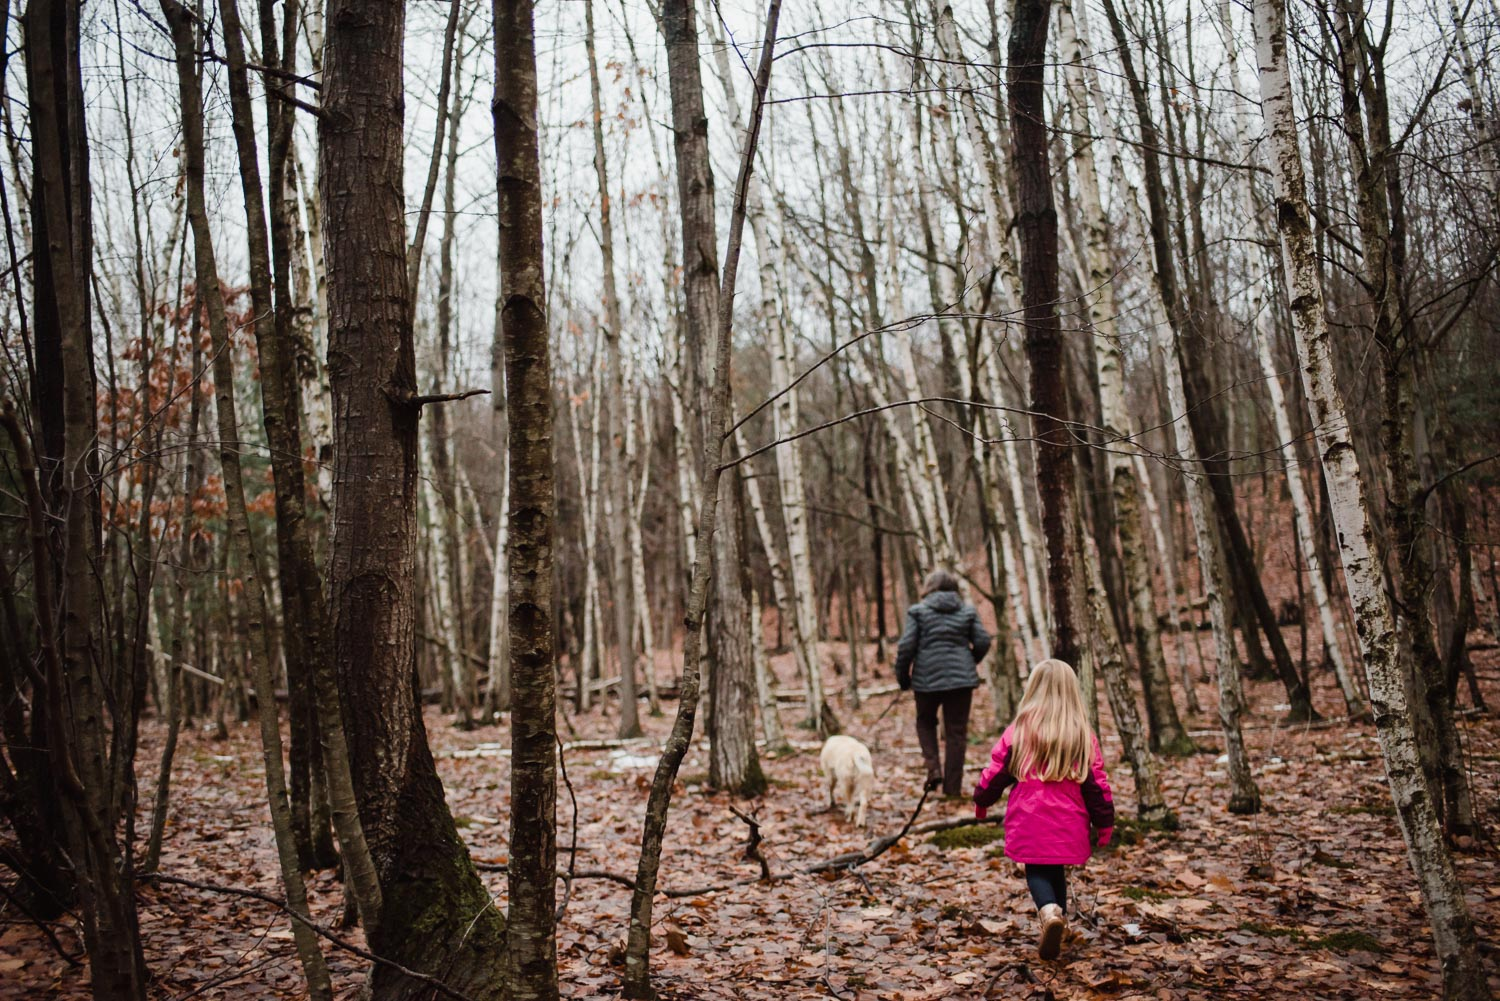 Grandmother and granddaughter walk through the woods.